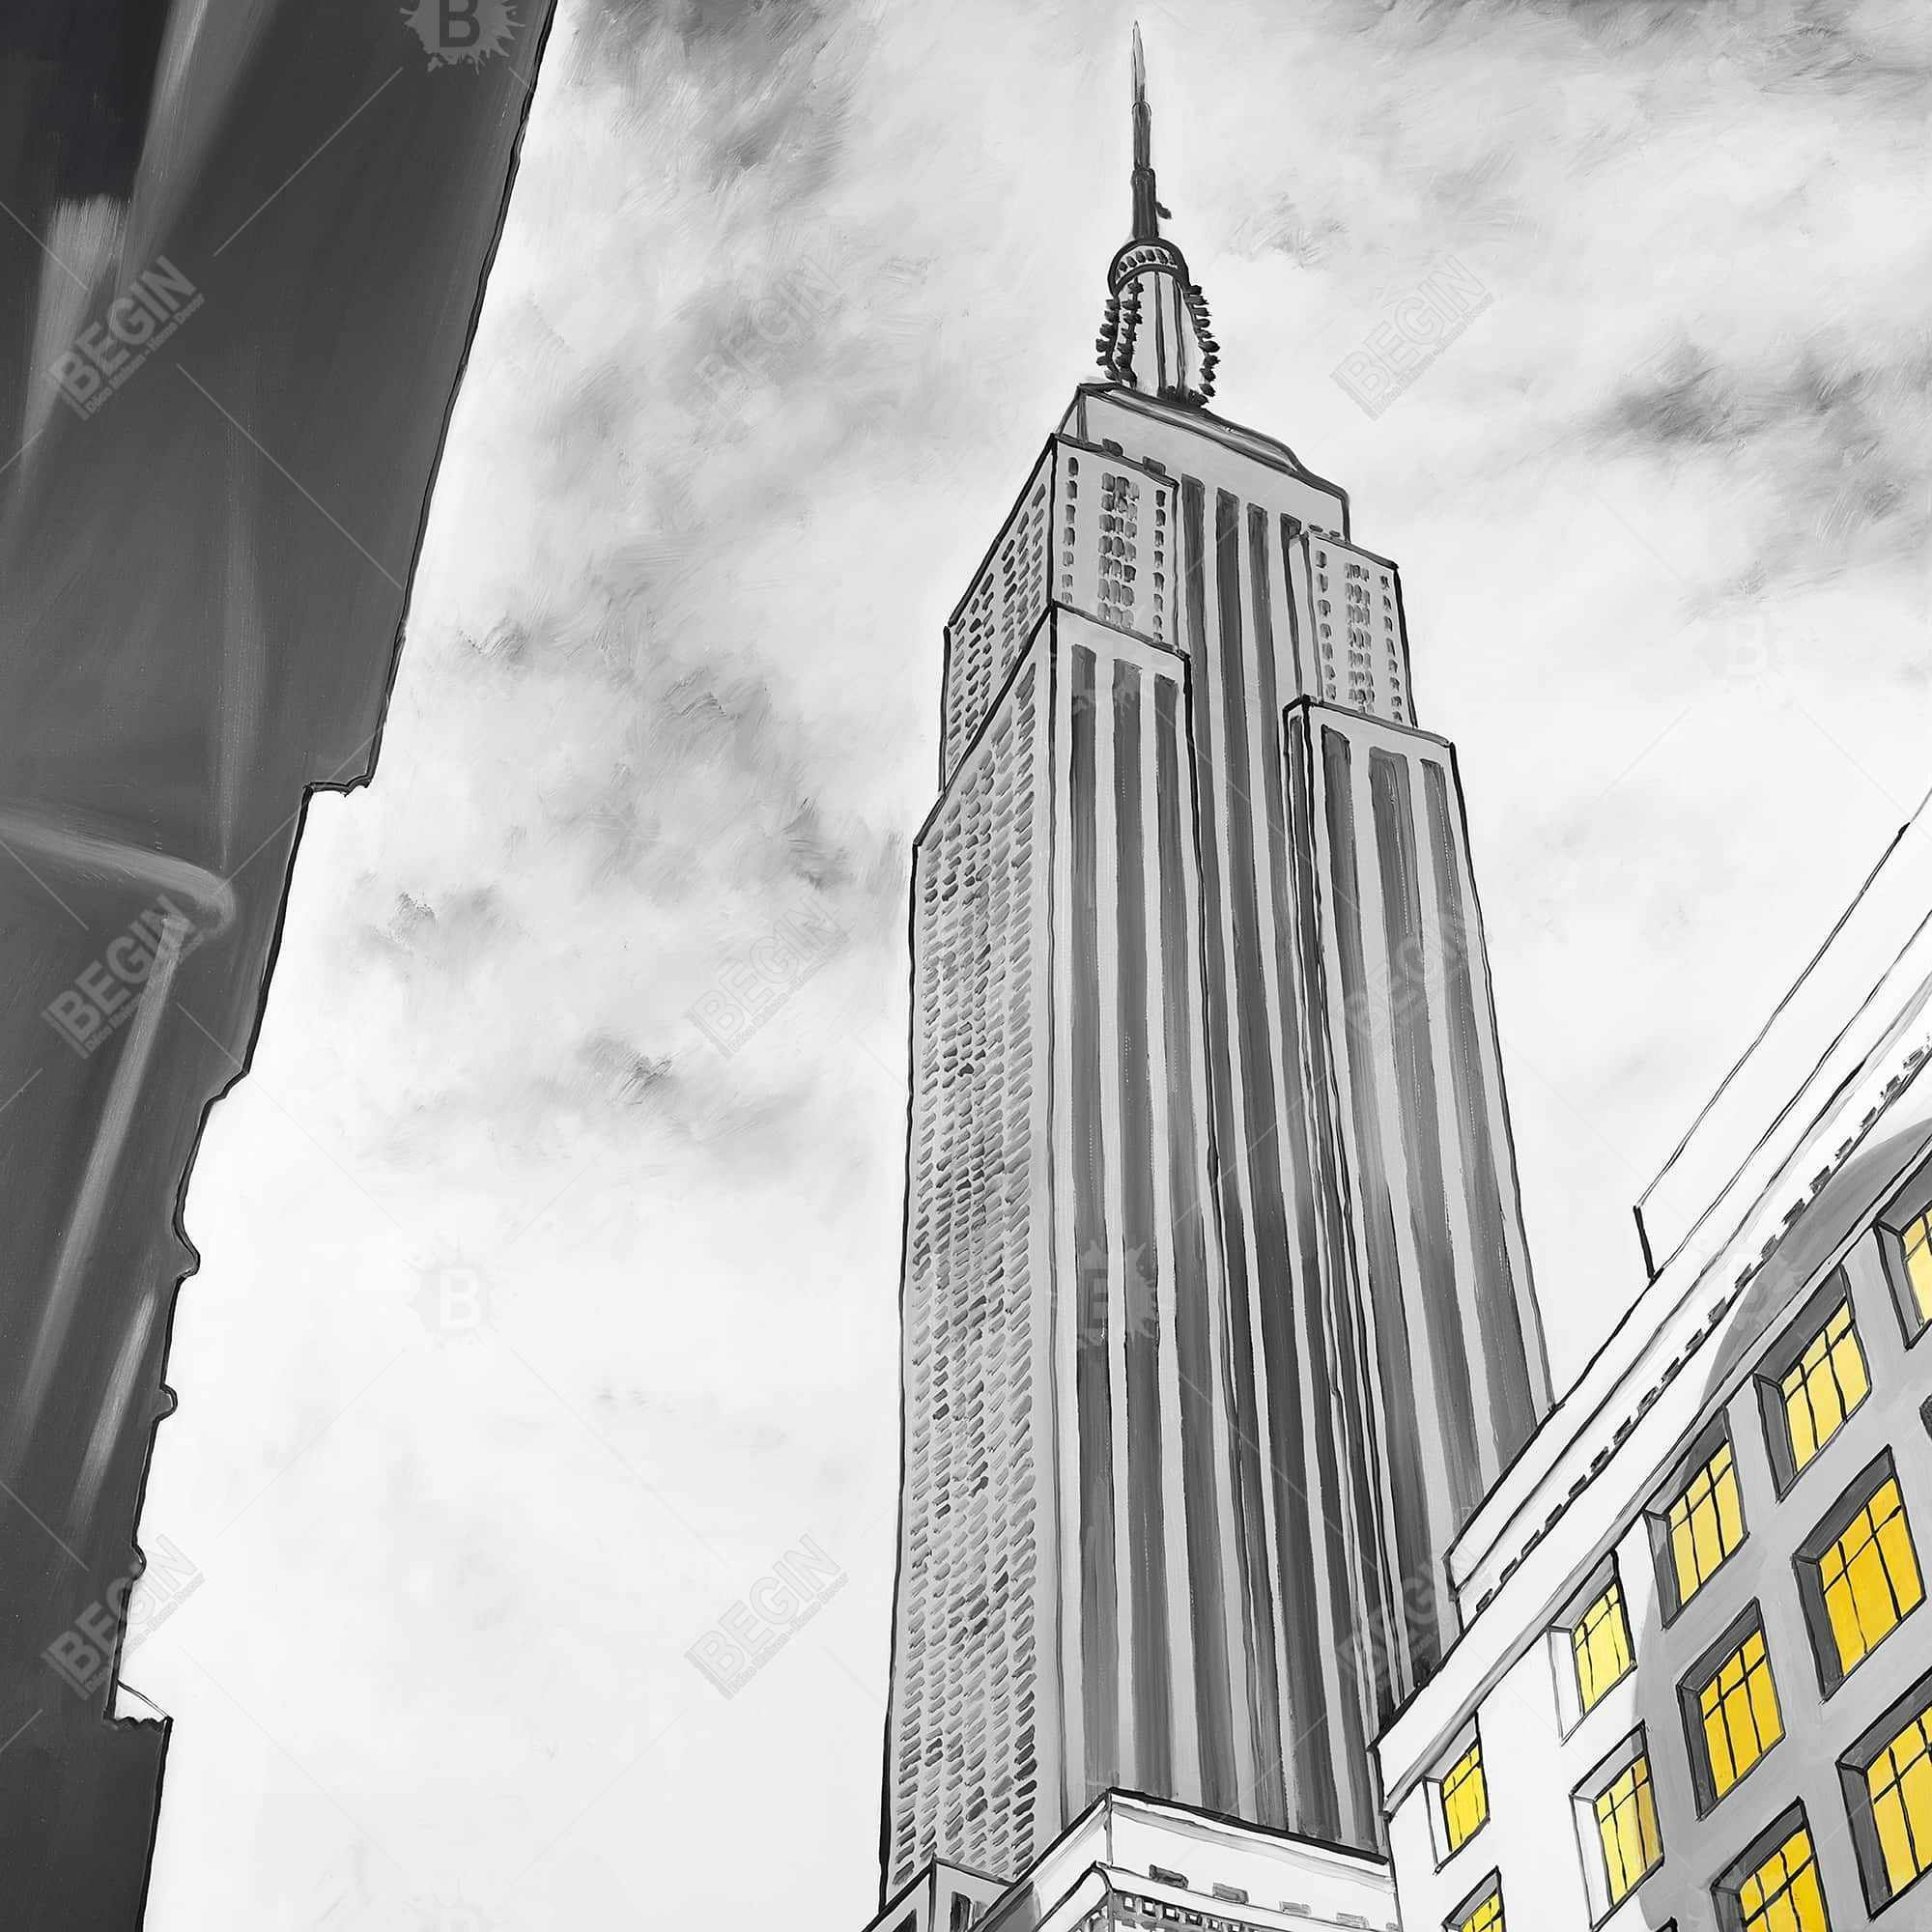 Tracé de l'empire state building